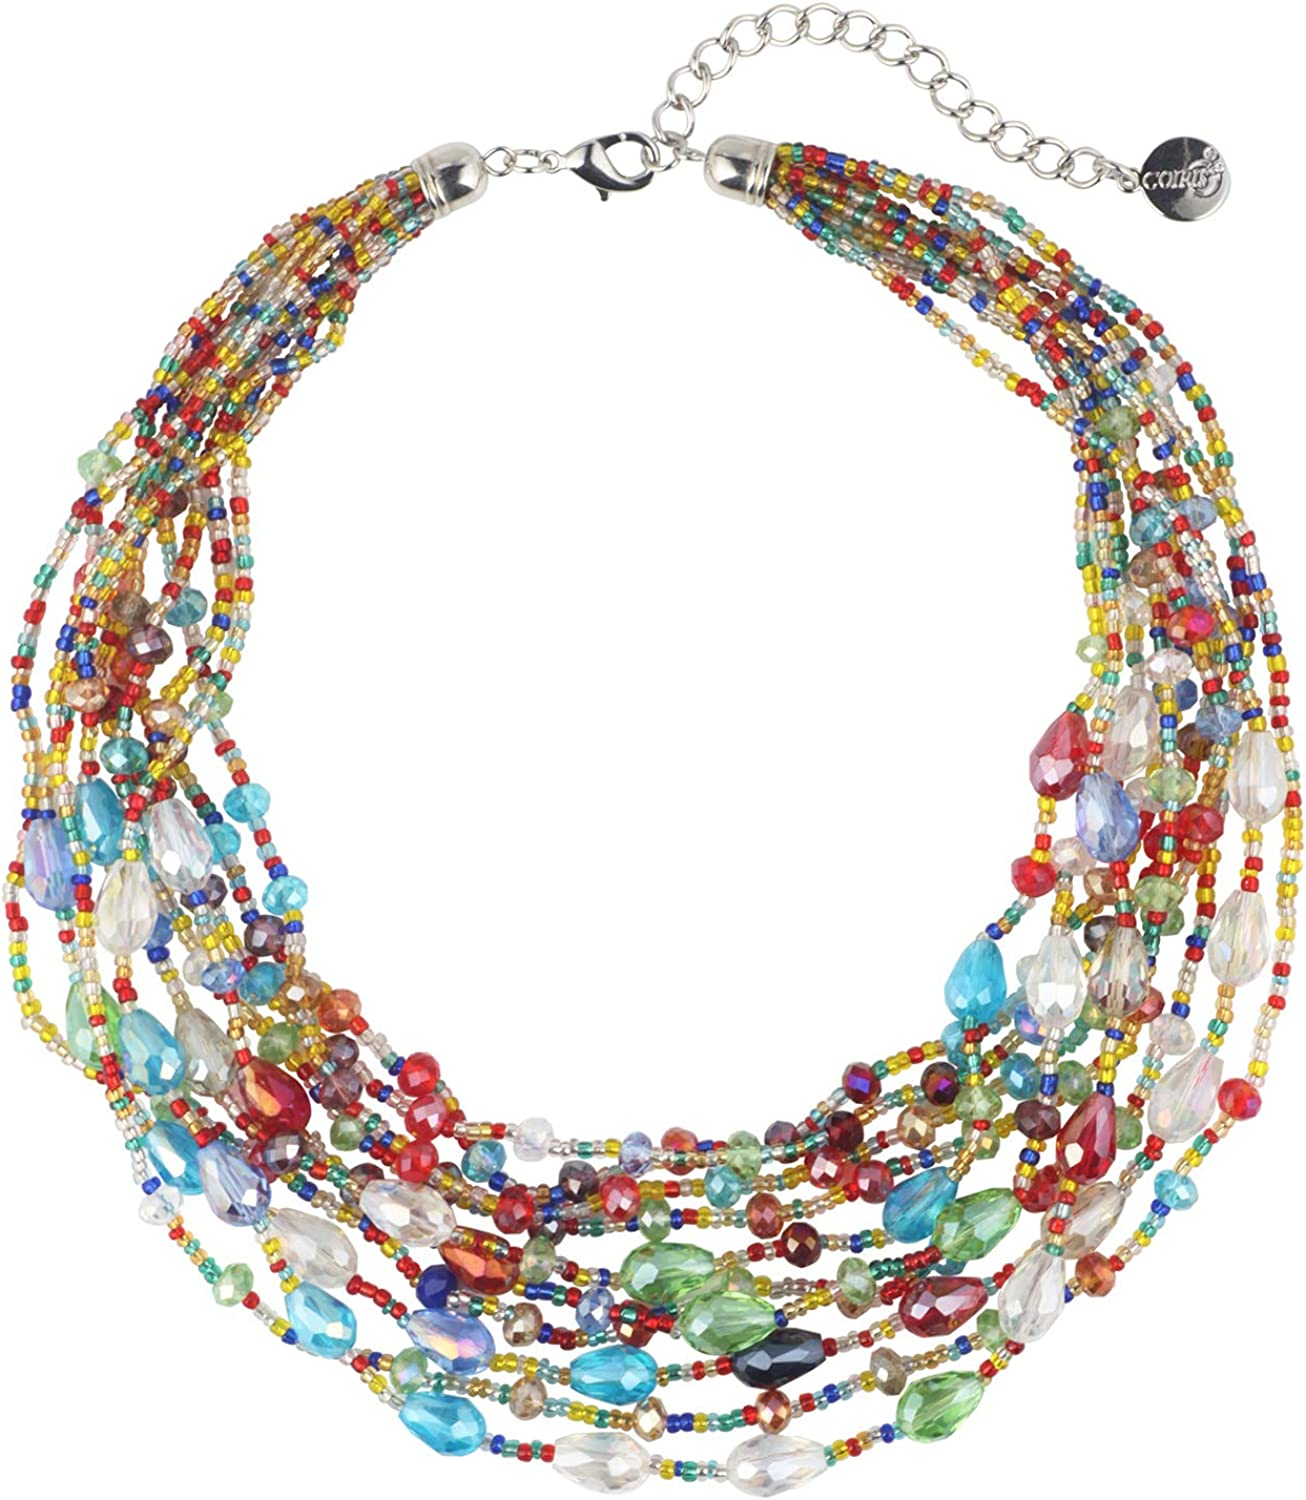 COIRIS Multi Strand Rainbow Crystal Colorful Seed beaded Statement Necklace for Women(N0071-Rainbow)